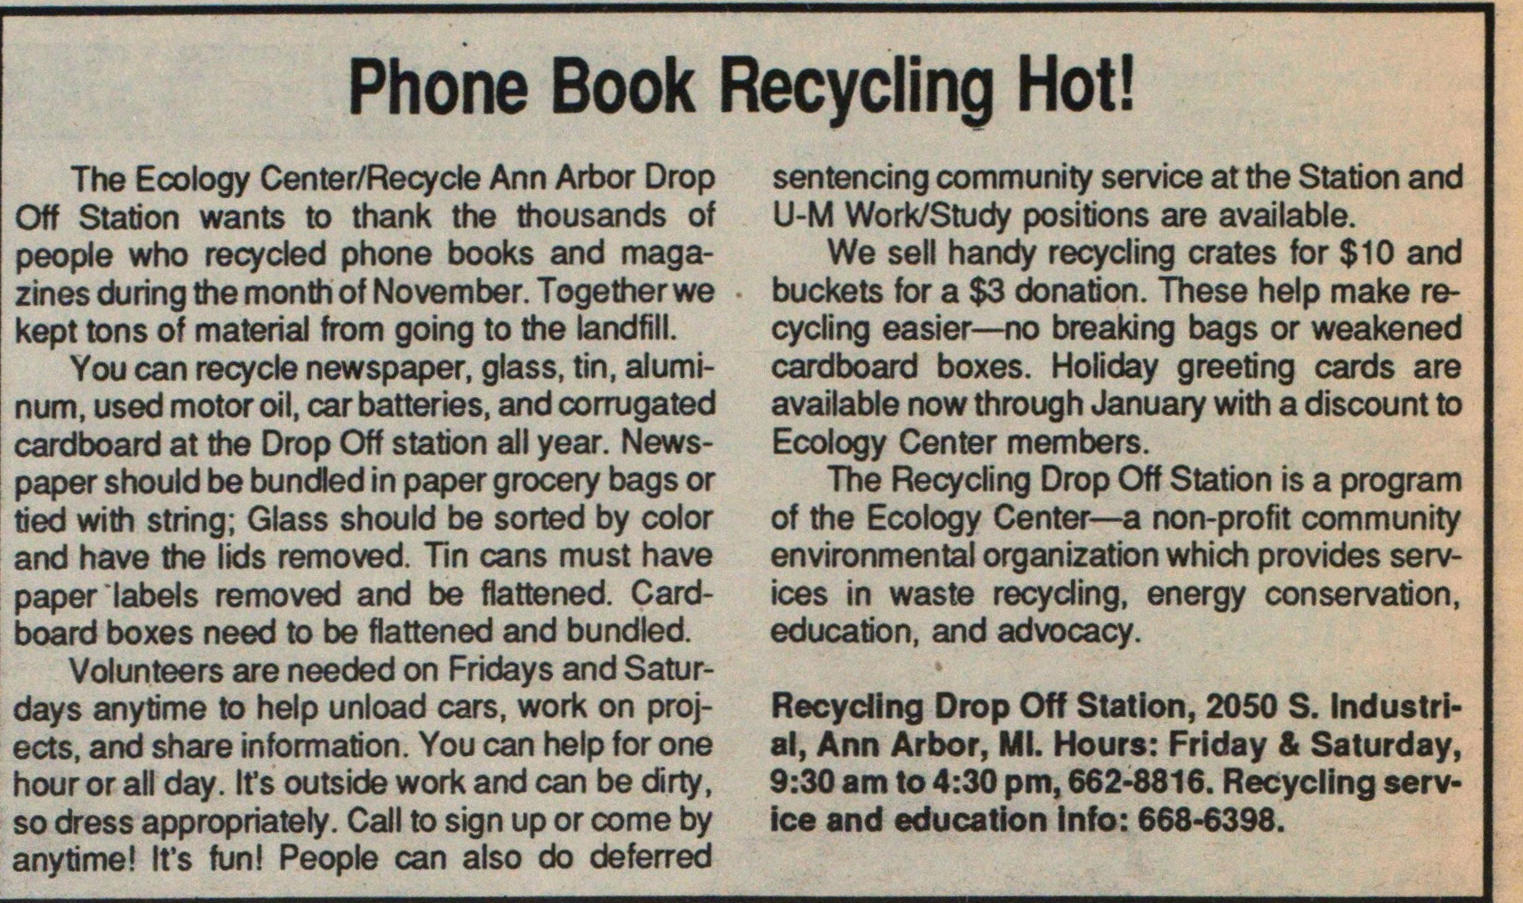 Phone Book Recycling Hot! image